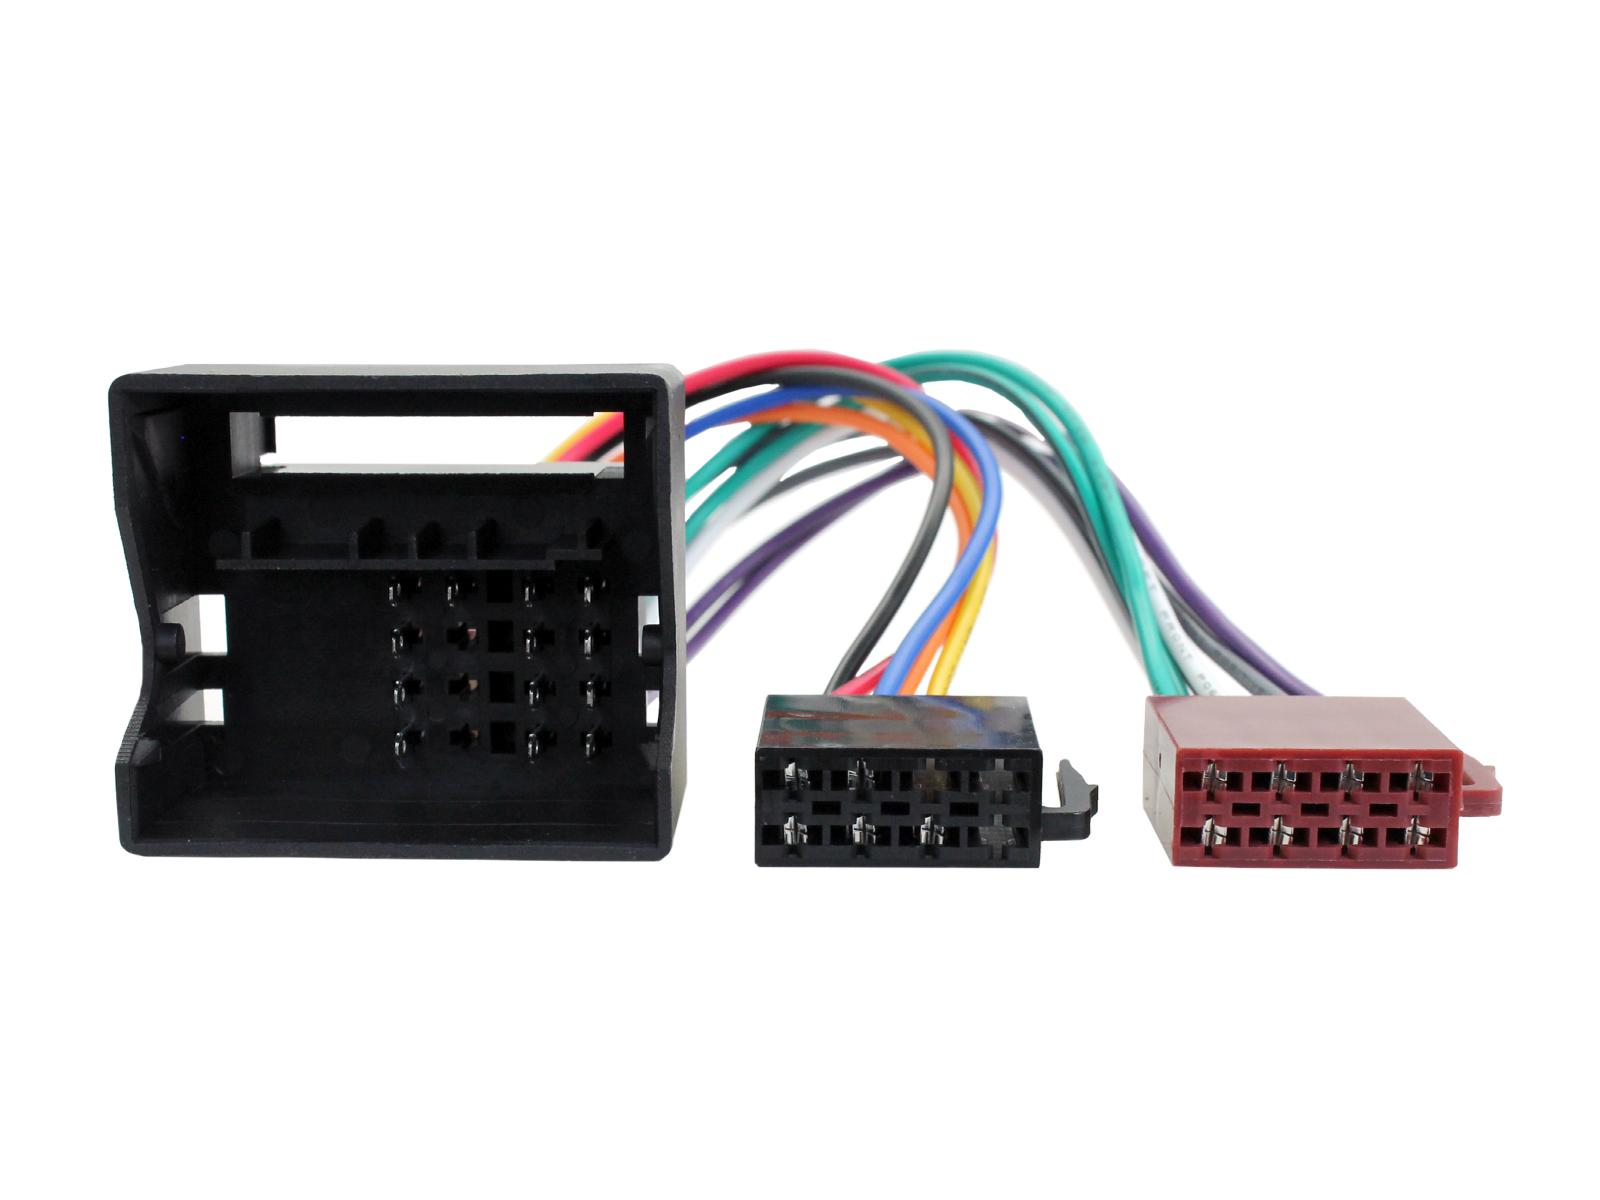 hight resolution of wiring wiring harnesses in car technology gps security connects2 bmw x5 2005 car stereo radio iso harness adaptor